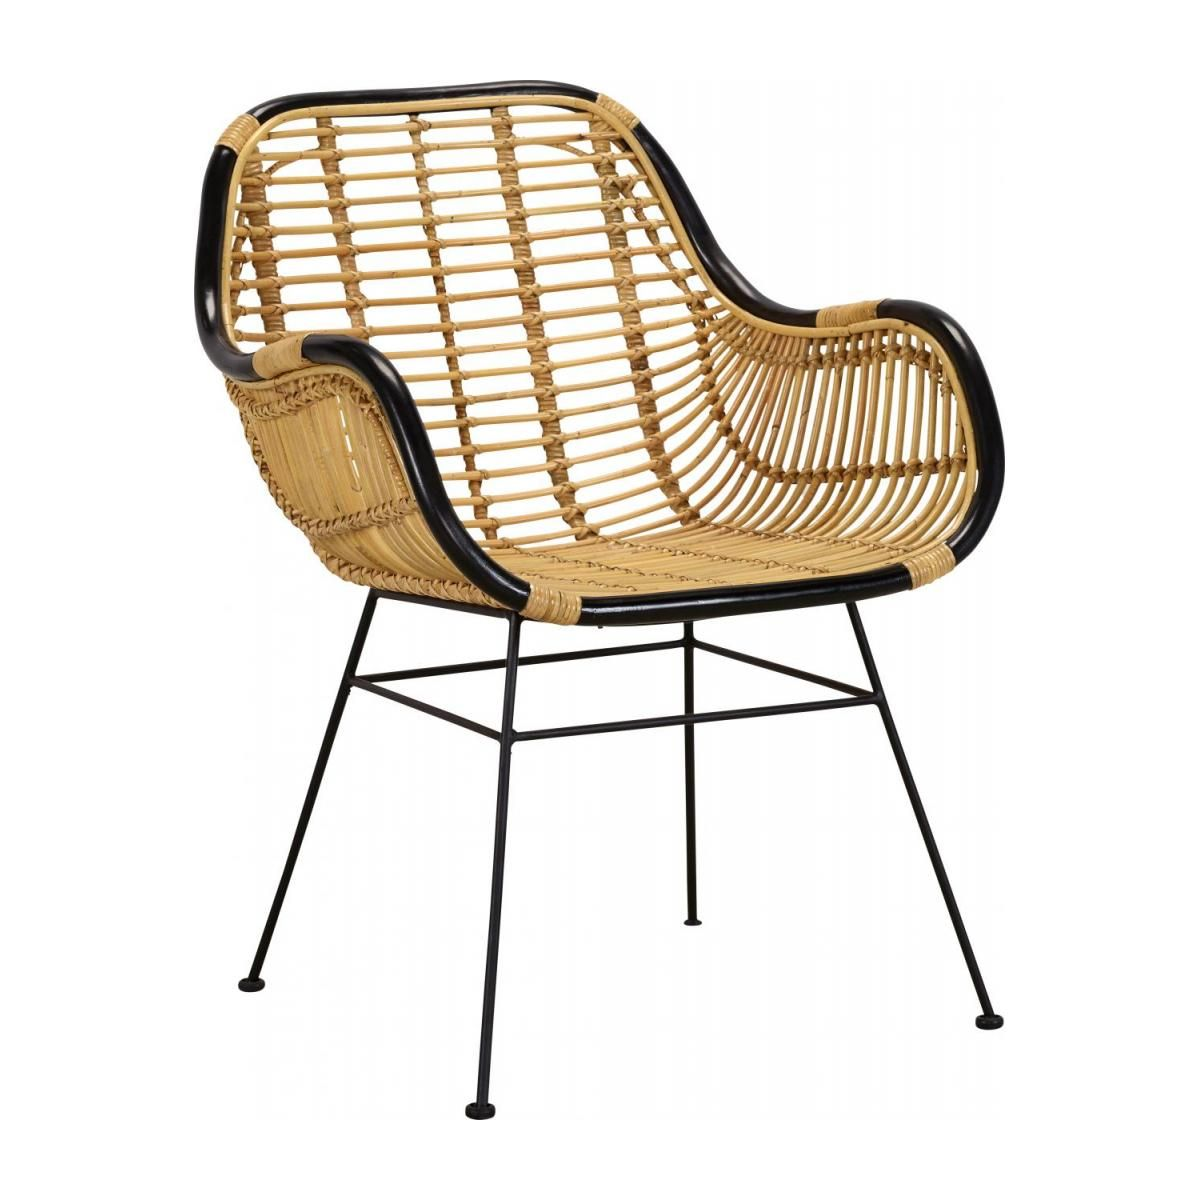 Korbstuhl Rattan Bea Stuhl Aus Rattan In 2019 New Outdoor Outdoor Chairs Chair